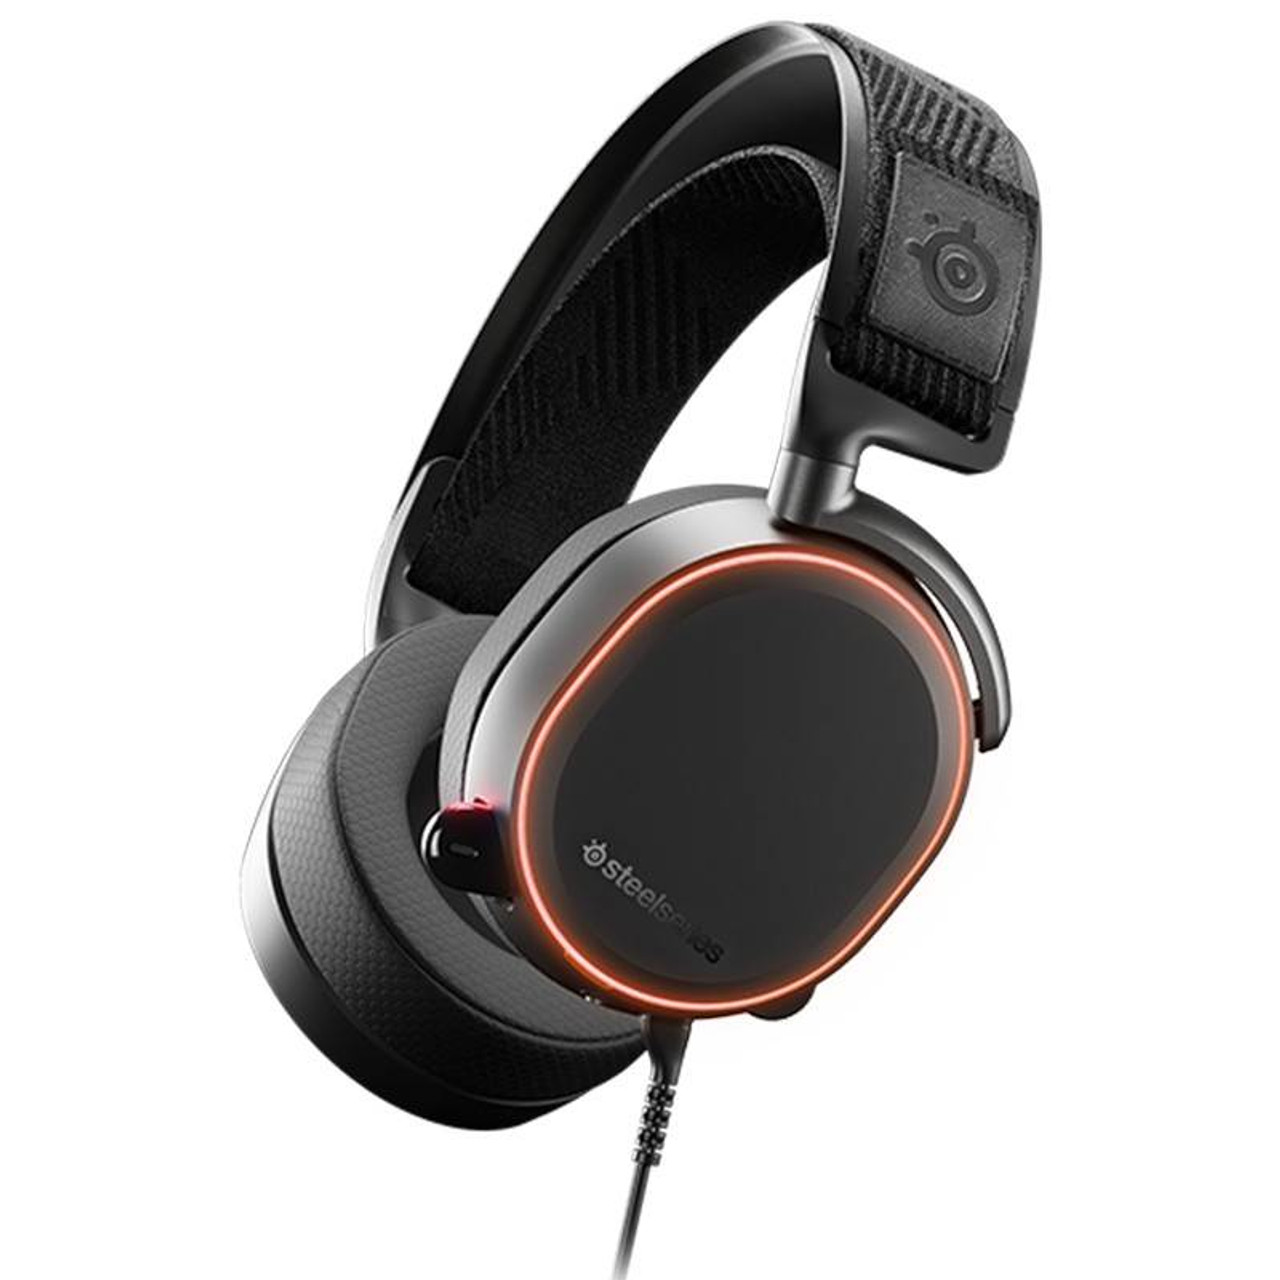 Image for SteelSeries Arctis Pro DTS RGB Headset - Black CX Computer Superstore